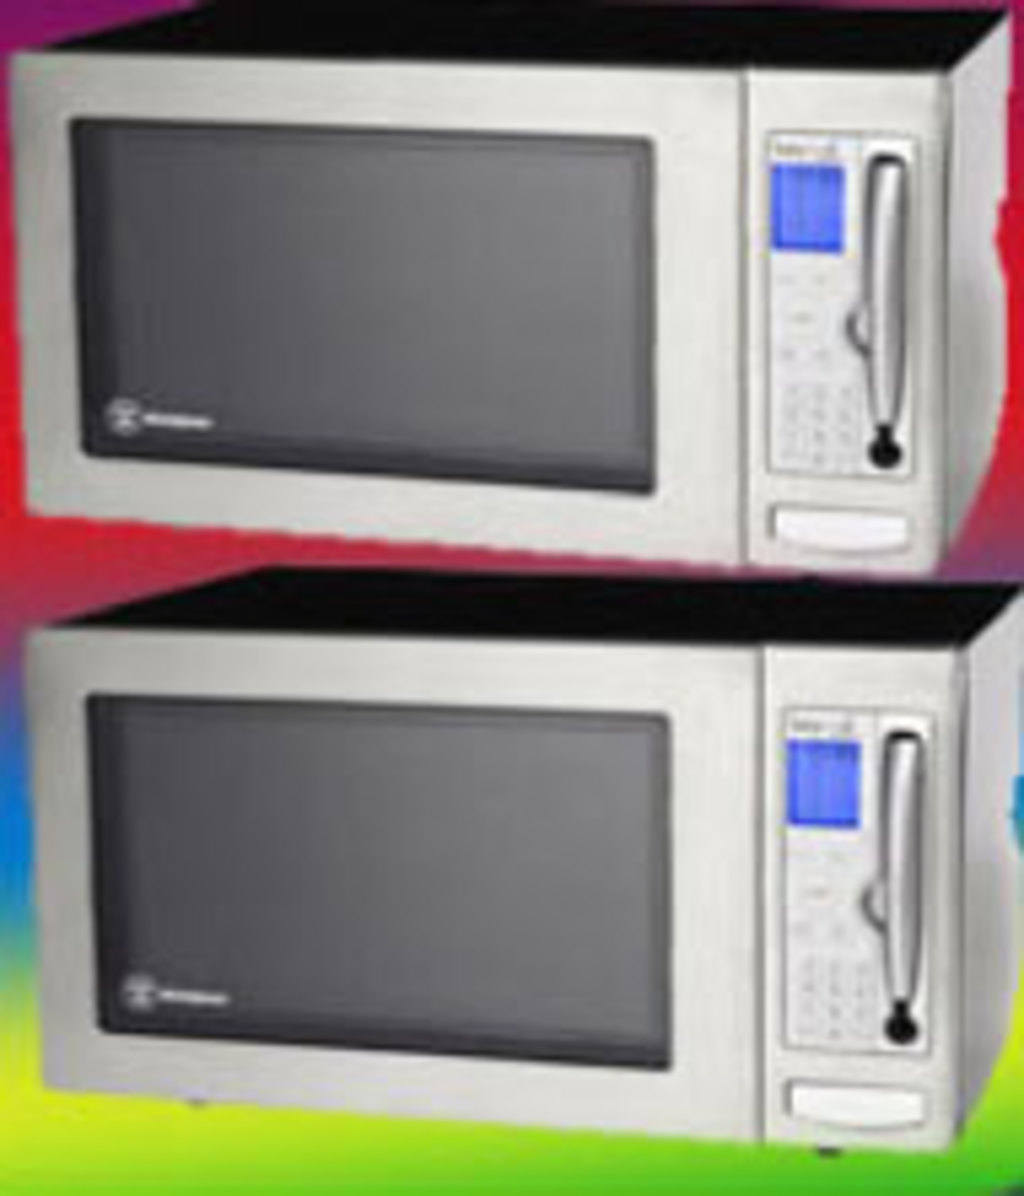 US Appliances Services - Microwave